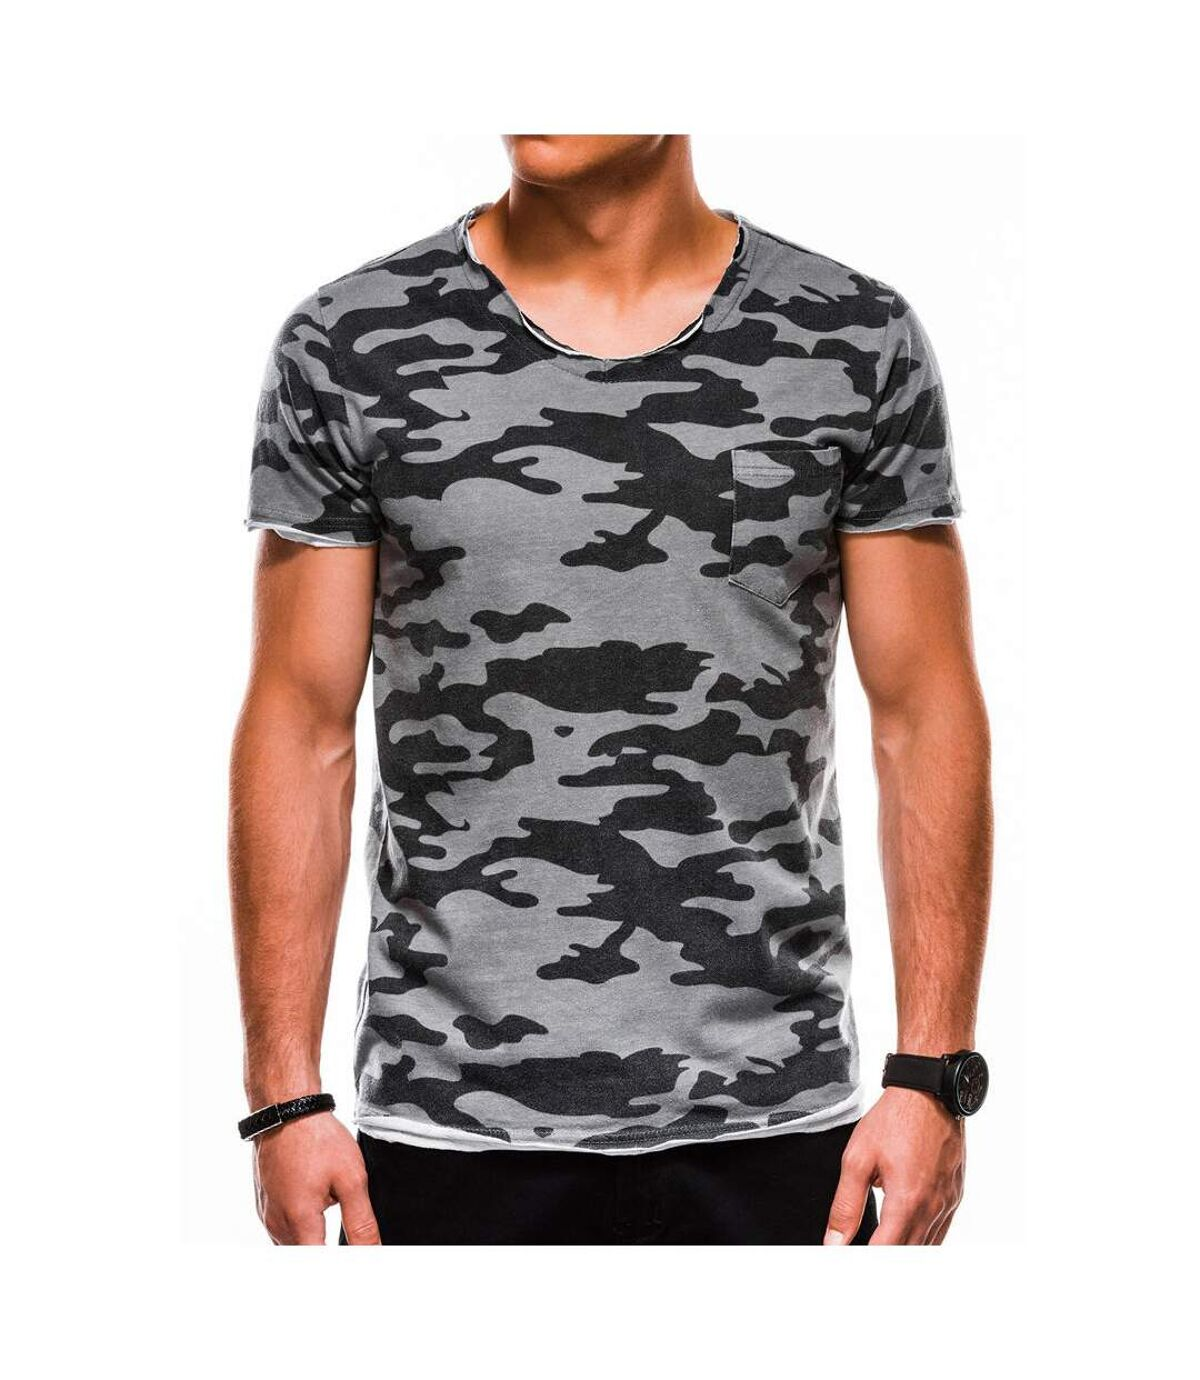 T-shirt camouflage homme T-shirt 1050 gris